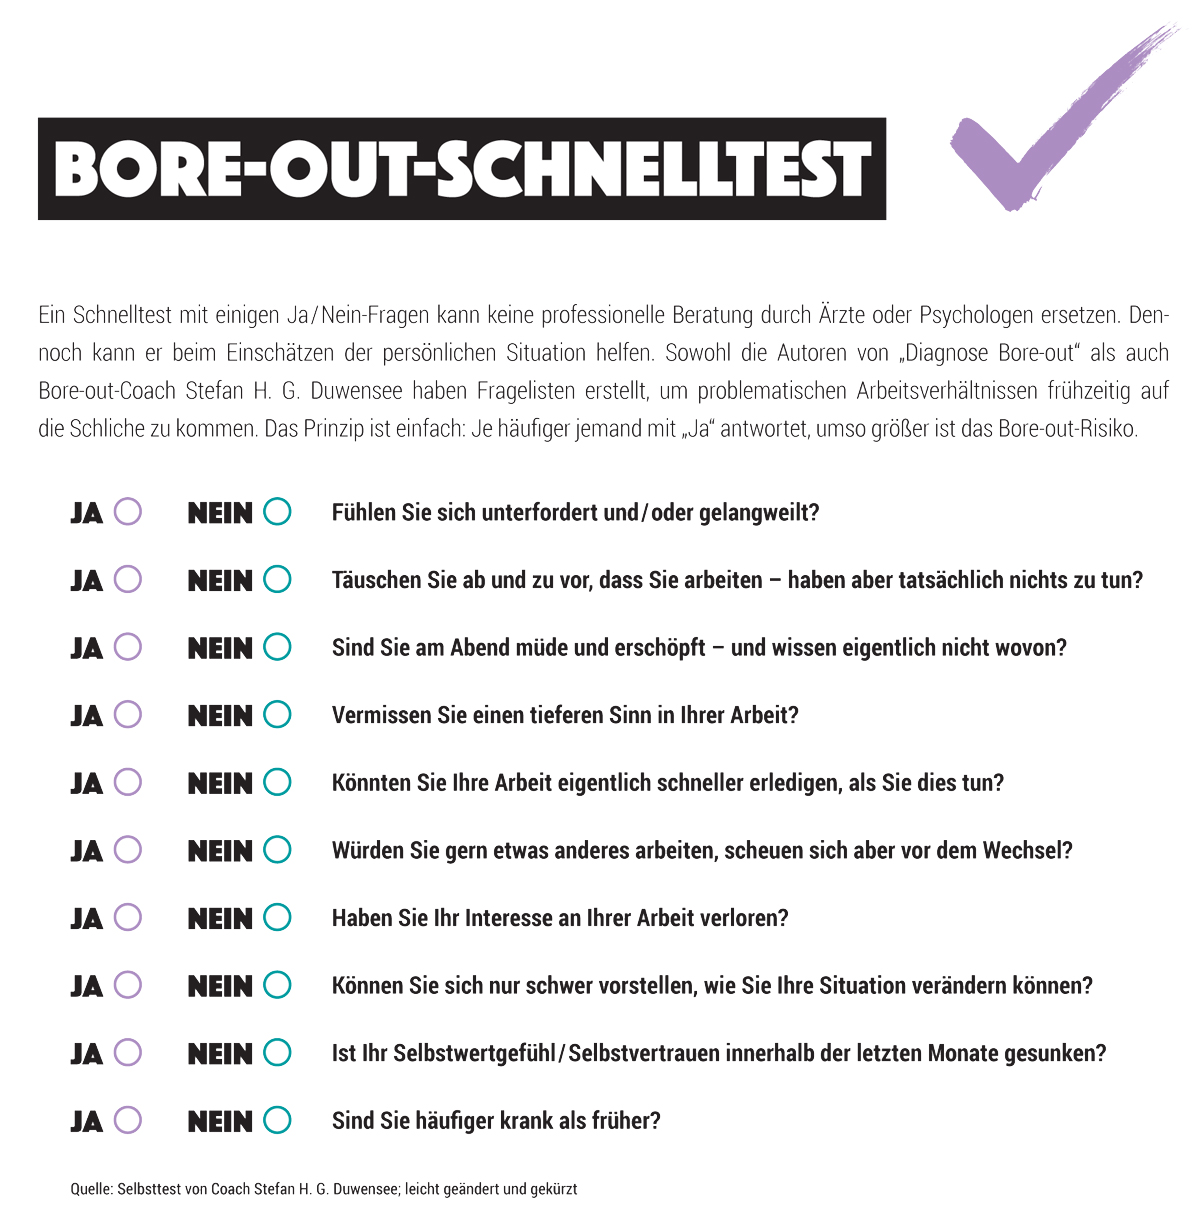 Bore-Out-Schnelltest